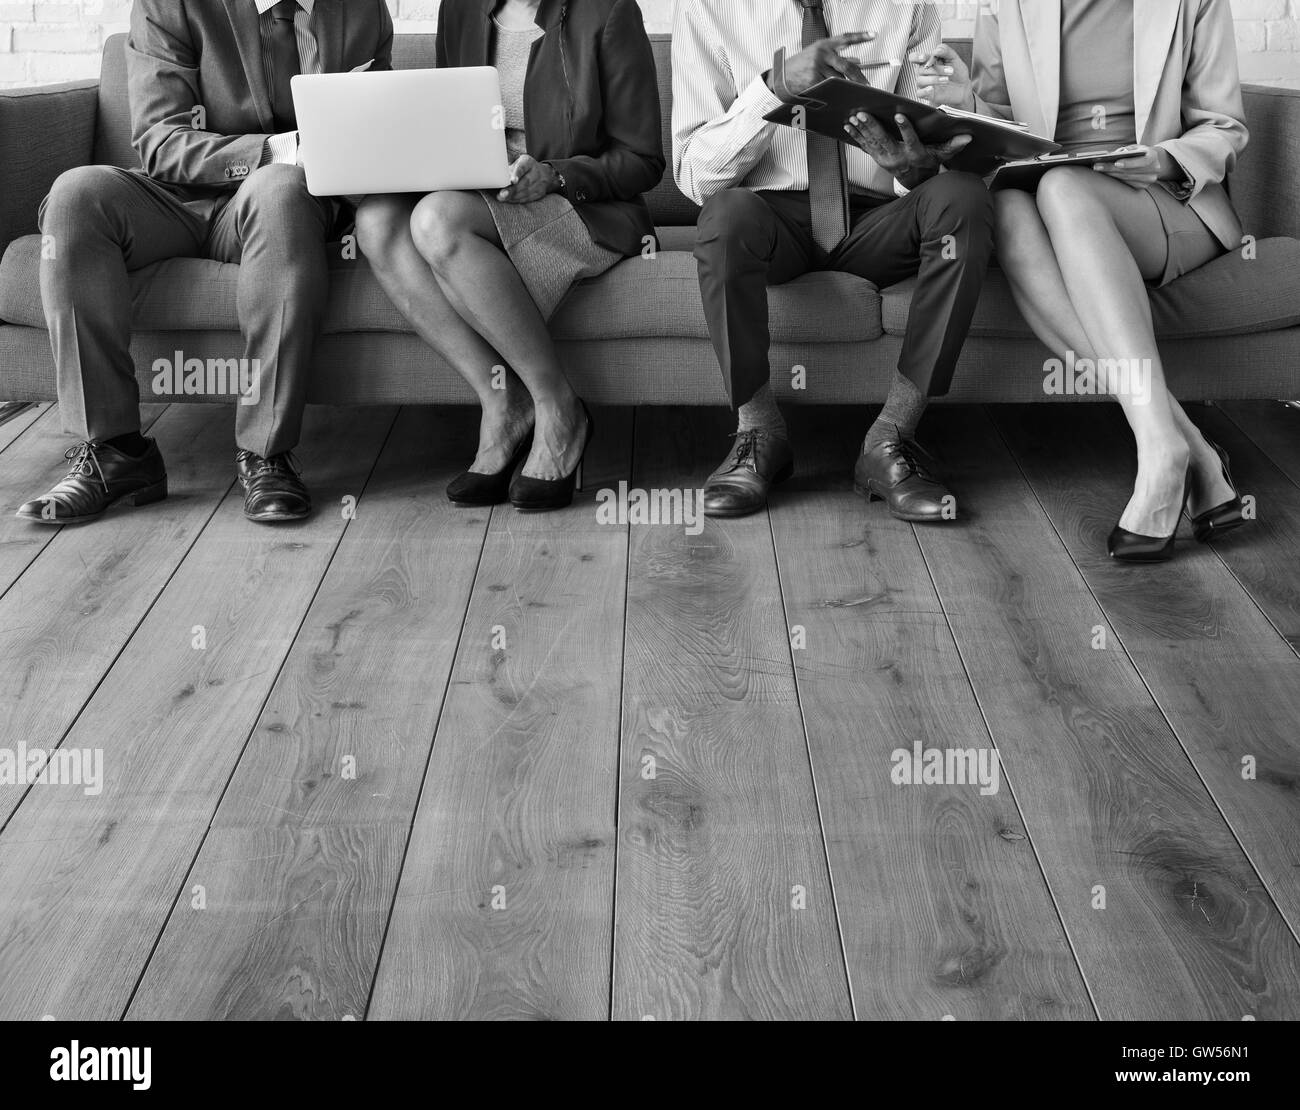 Corporate Professional Business Workers Concept - Stock Image